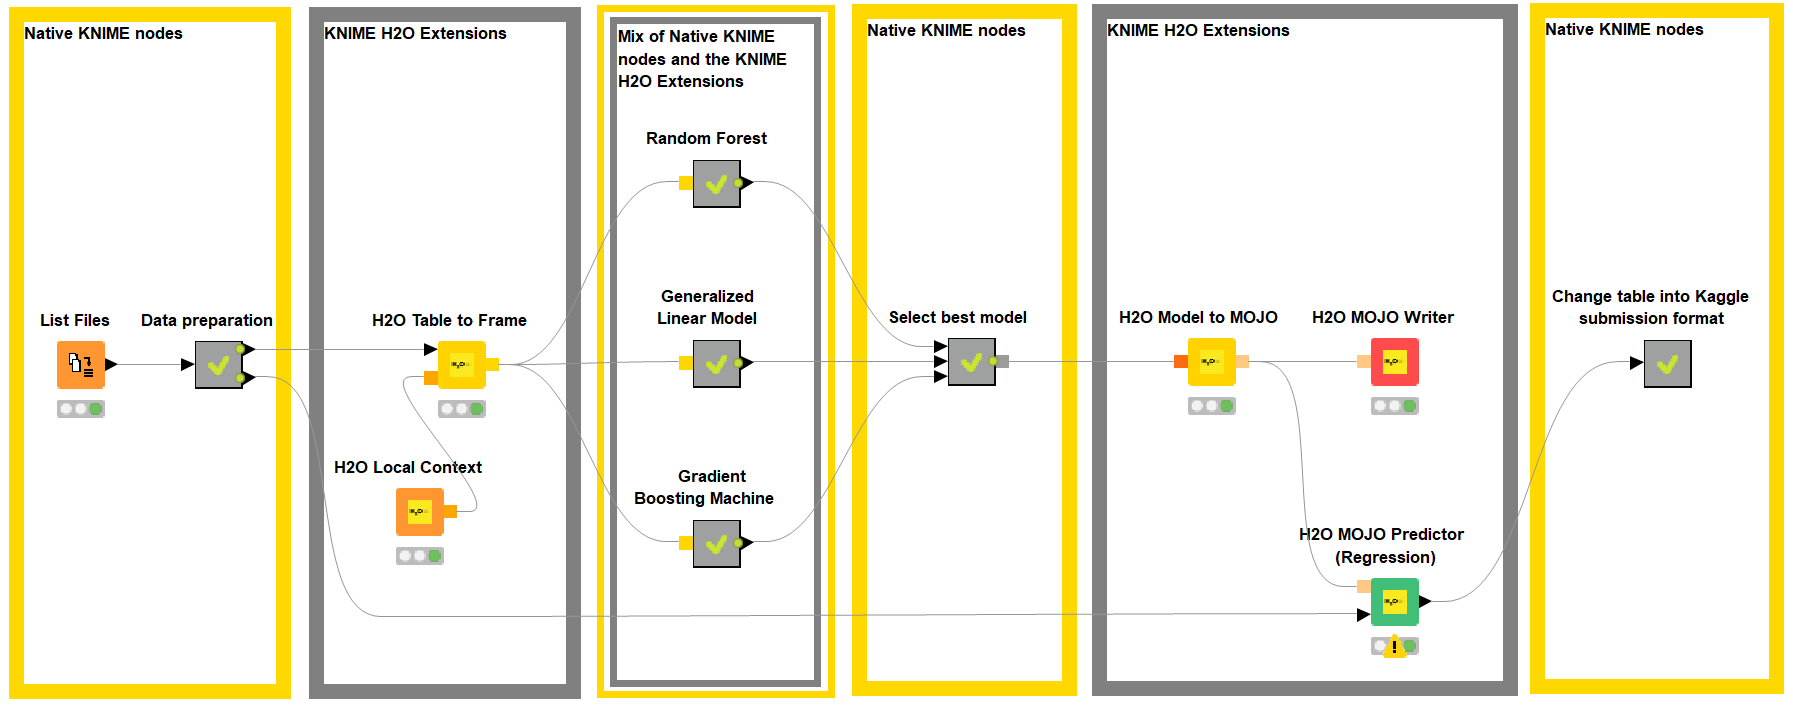 Solving a Kaggle Challenge using the combined power of KNIME